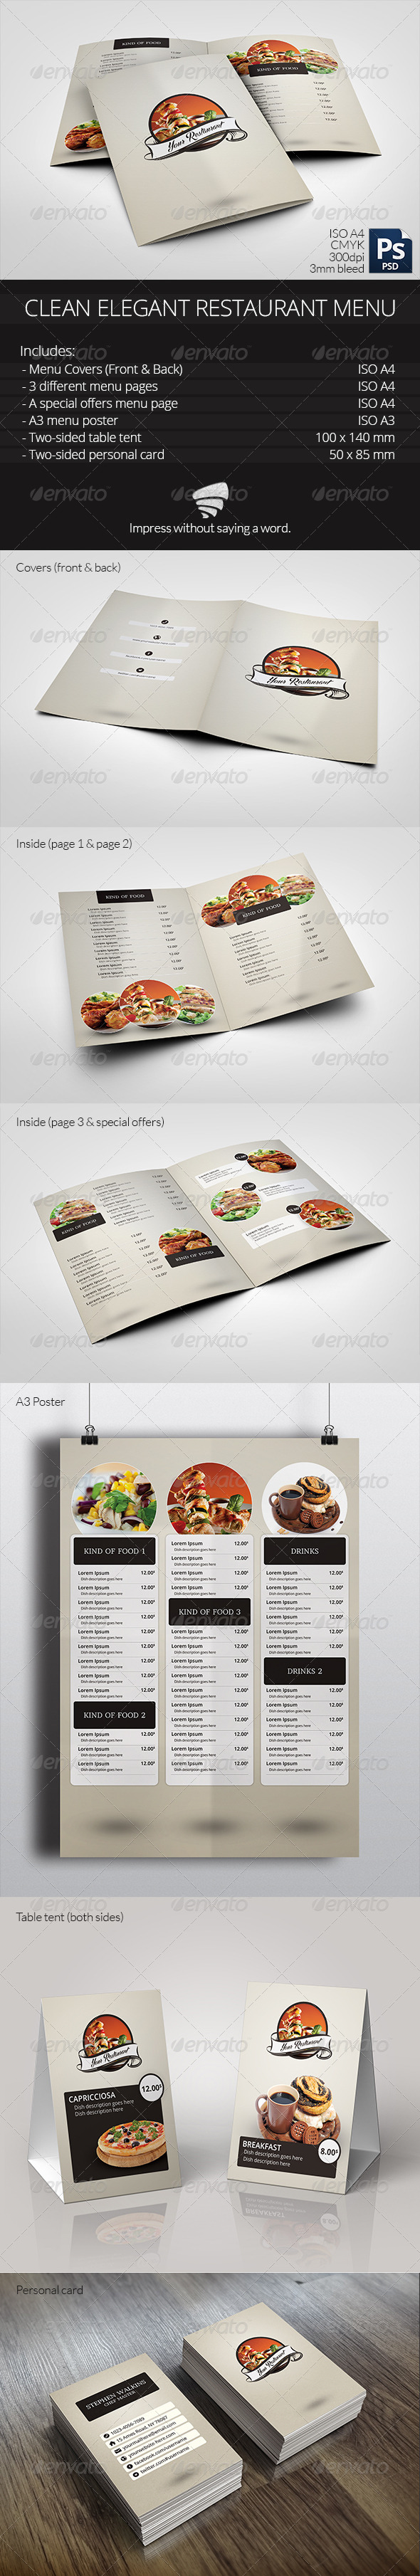 GraphicRiver Clean Elegant Restaurant Menu 6282689